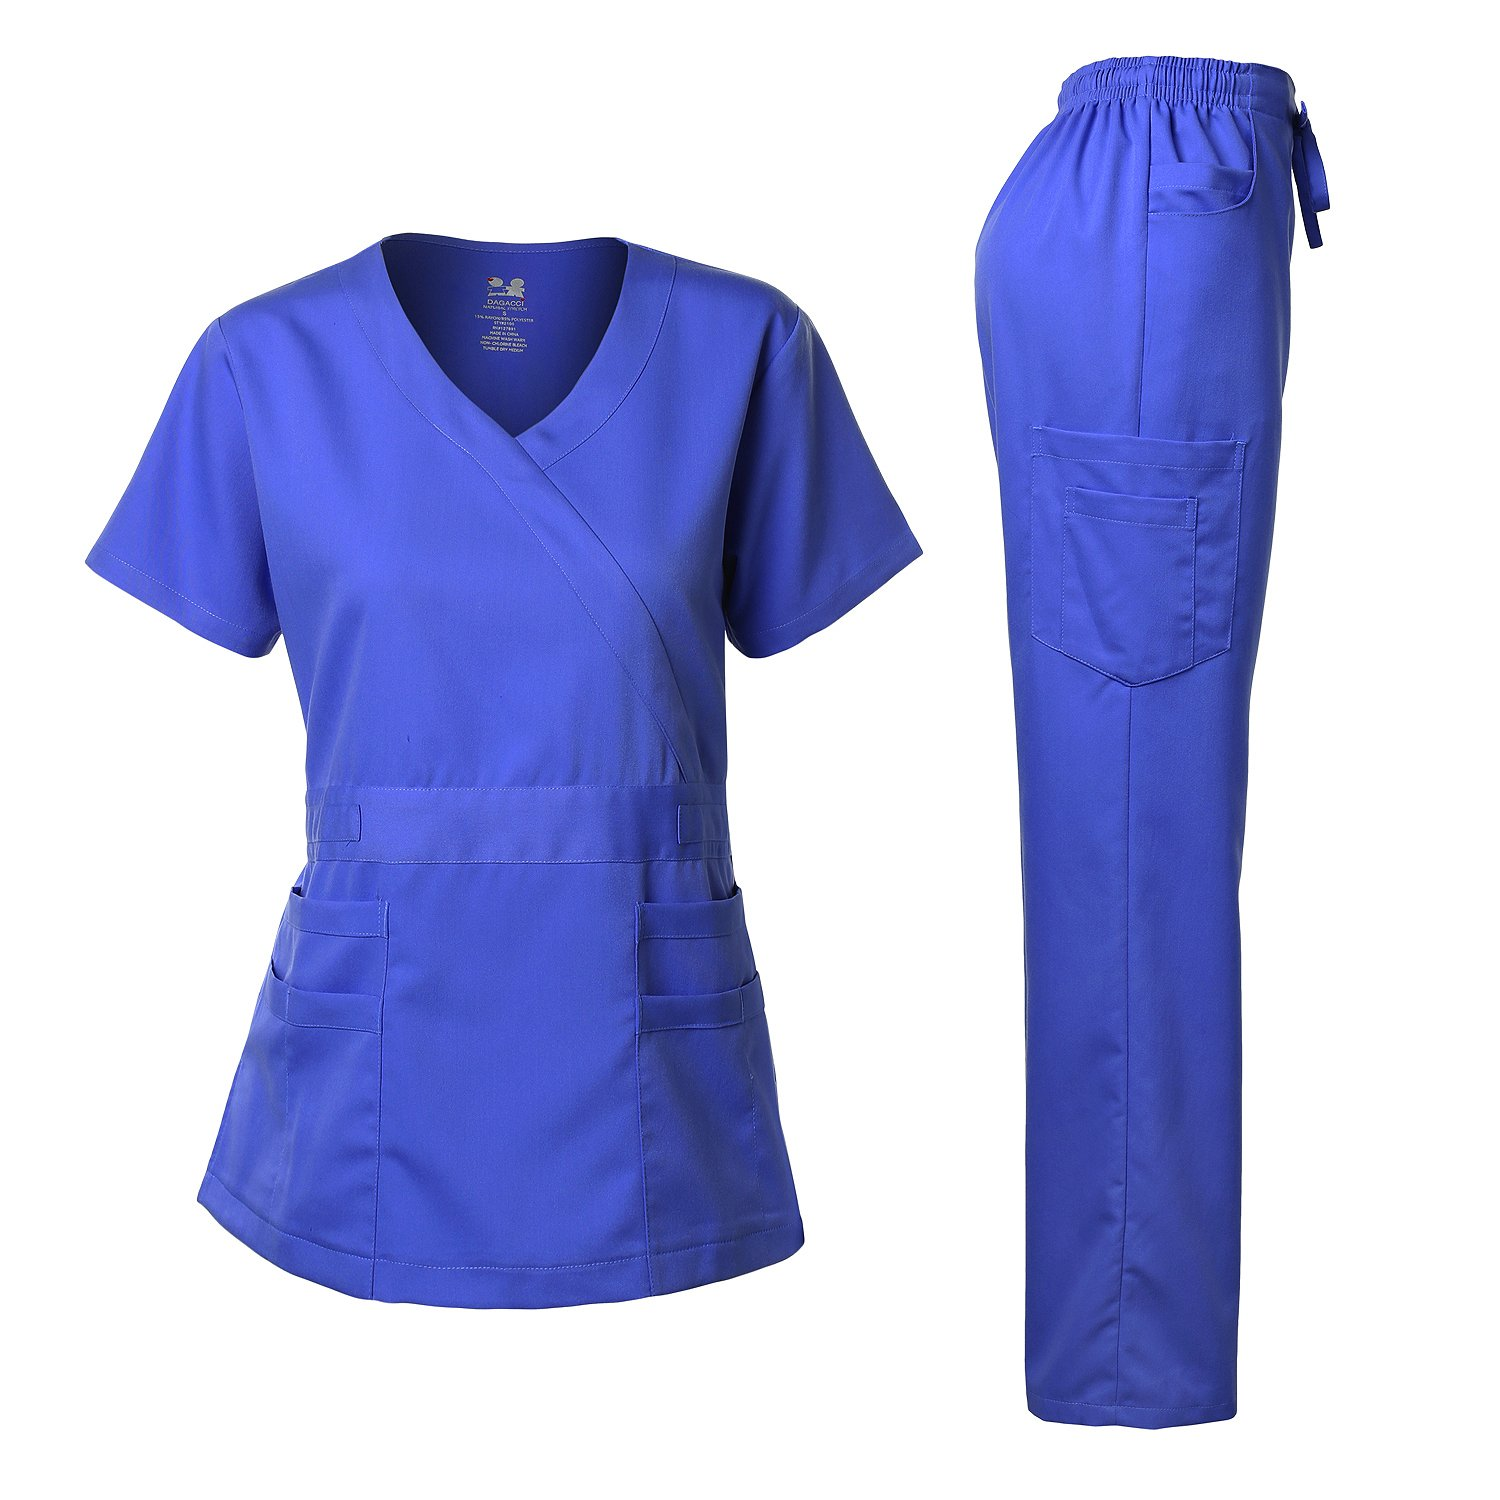 Dagacci Medical Uniform Womens Stretch Image 1